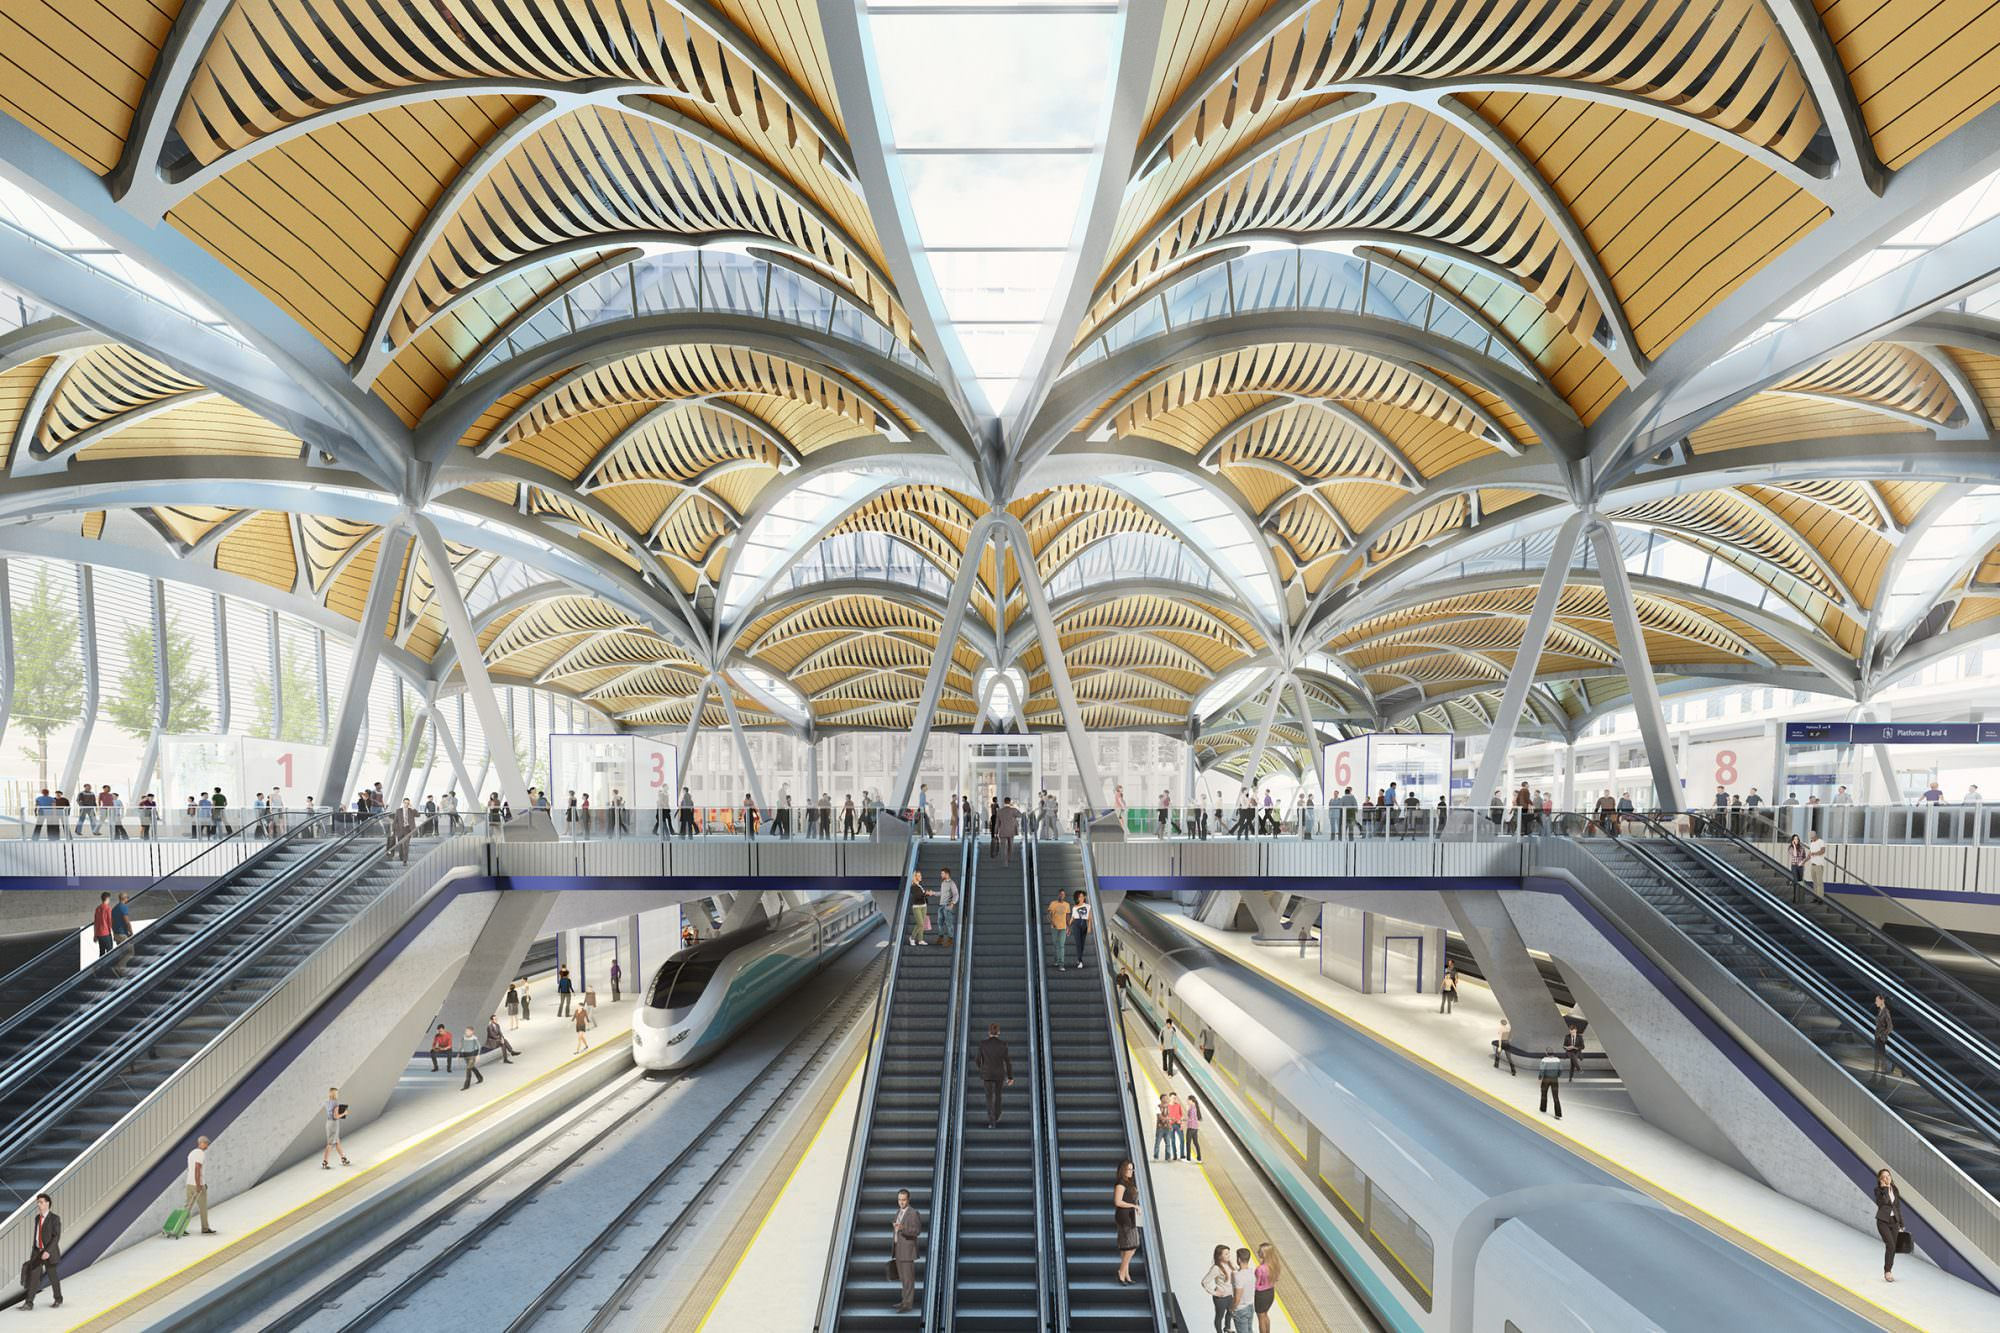 HS2 launches procurement competition for London station works - Rail UK